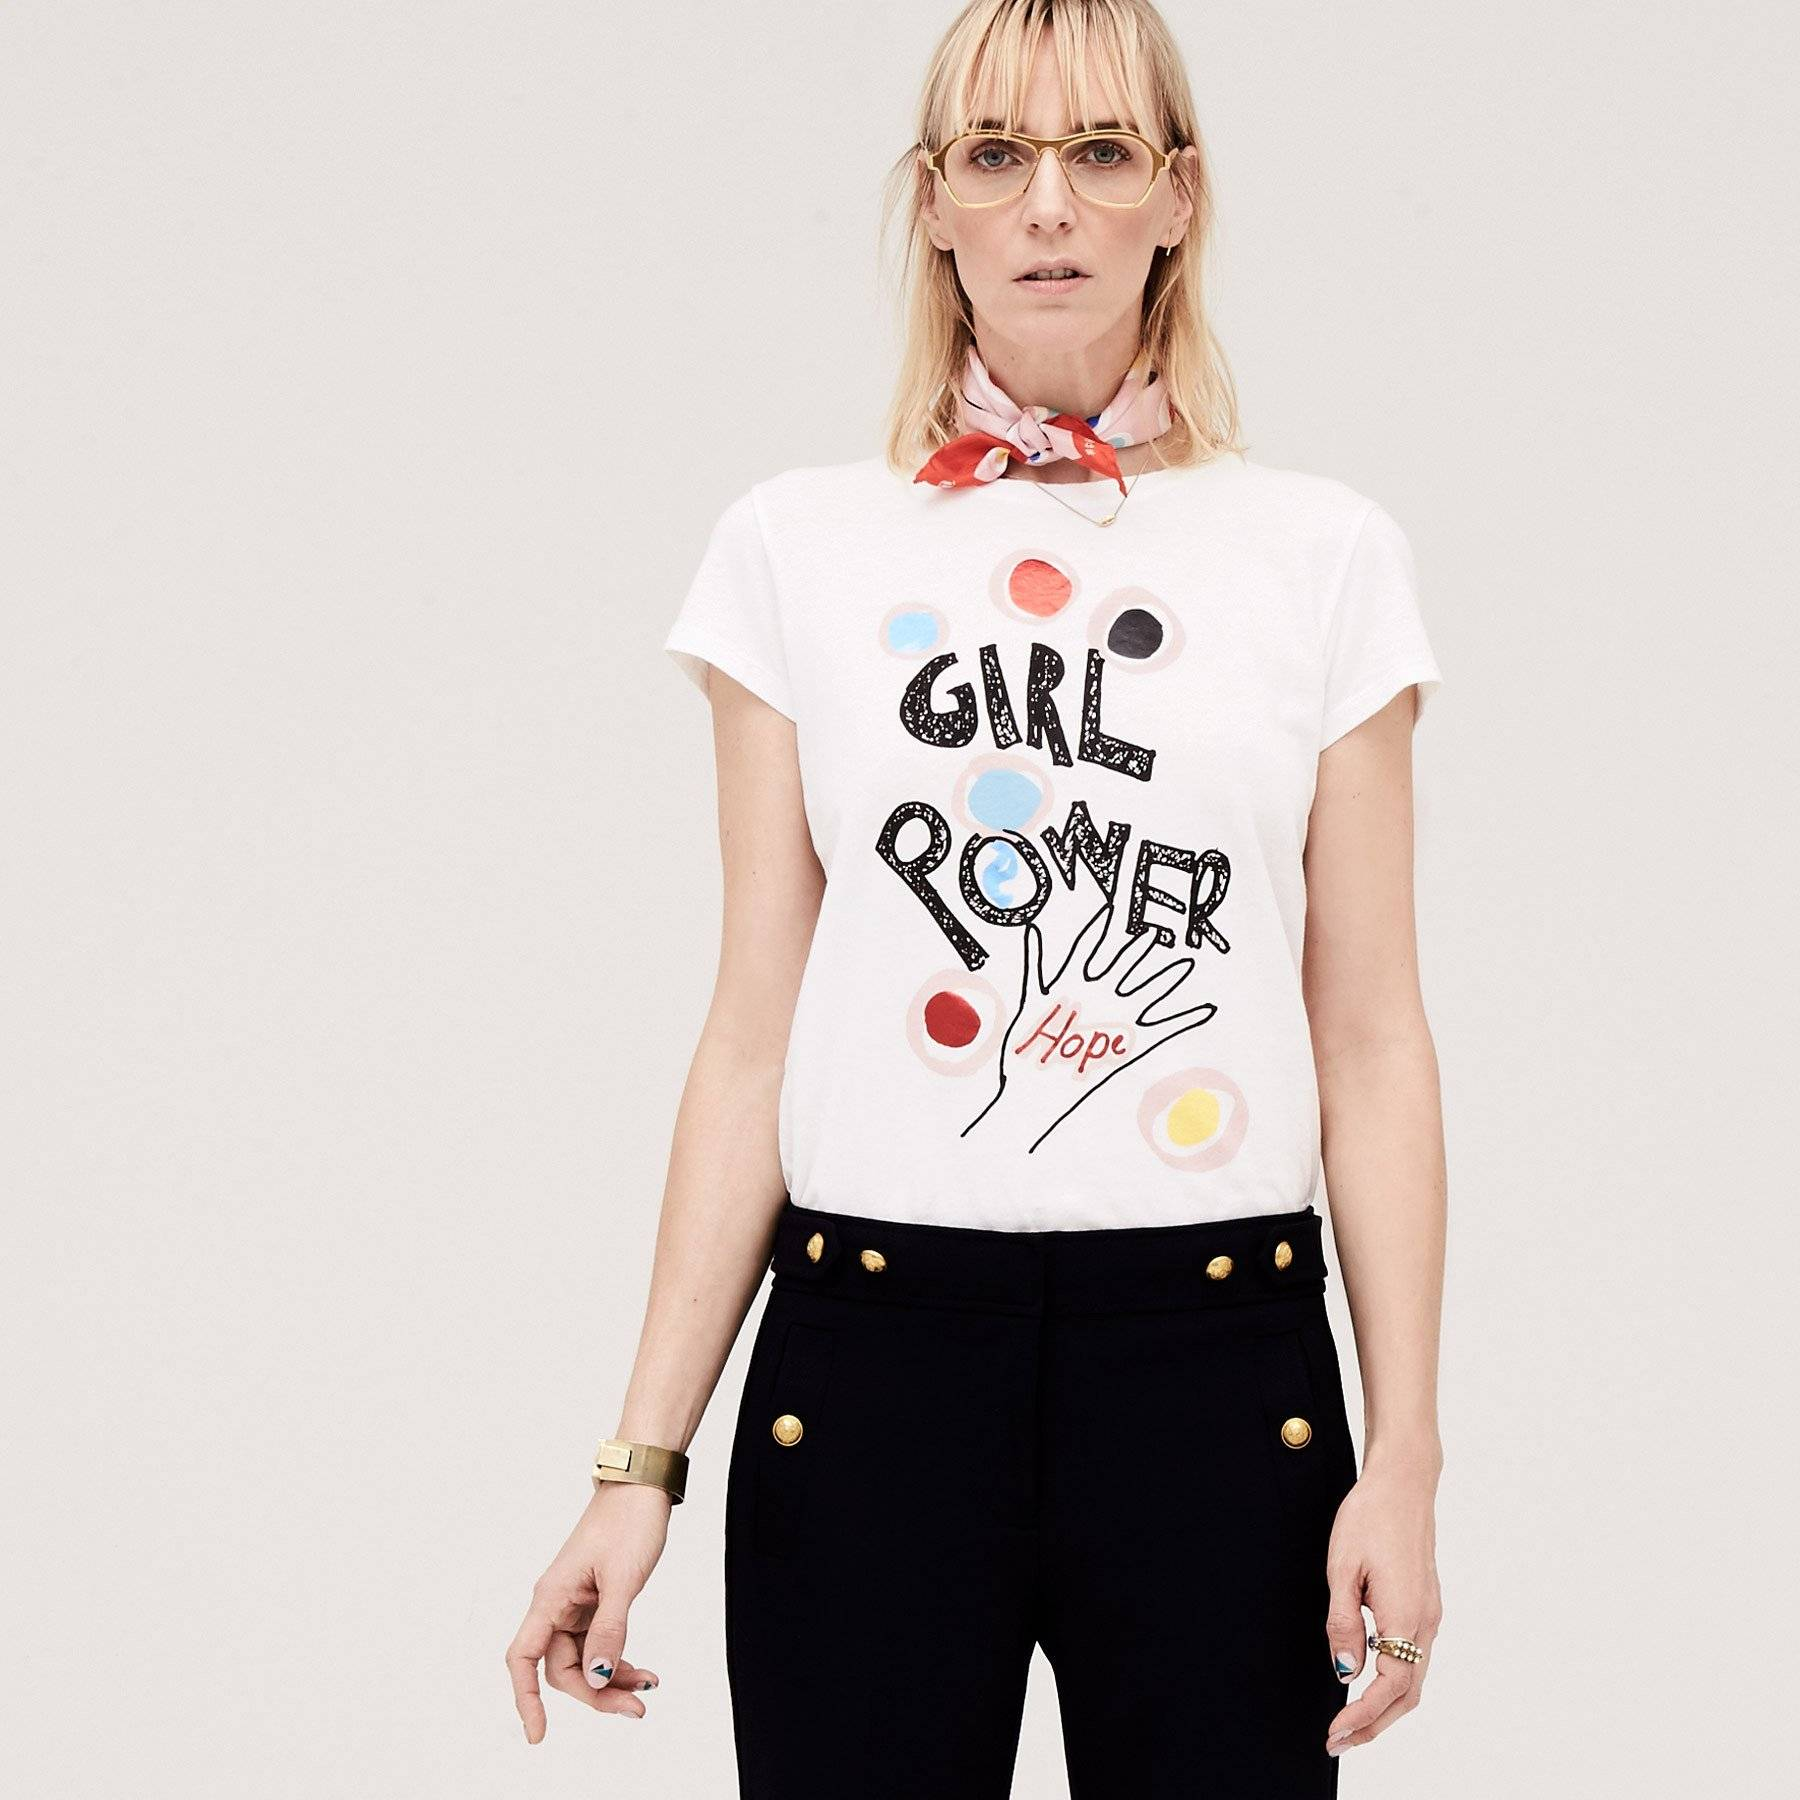 Round Plus Square Girl Power Tee